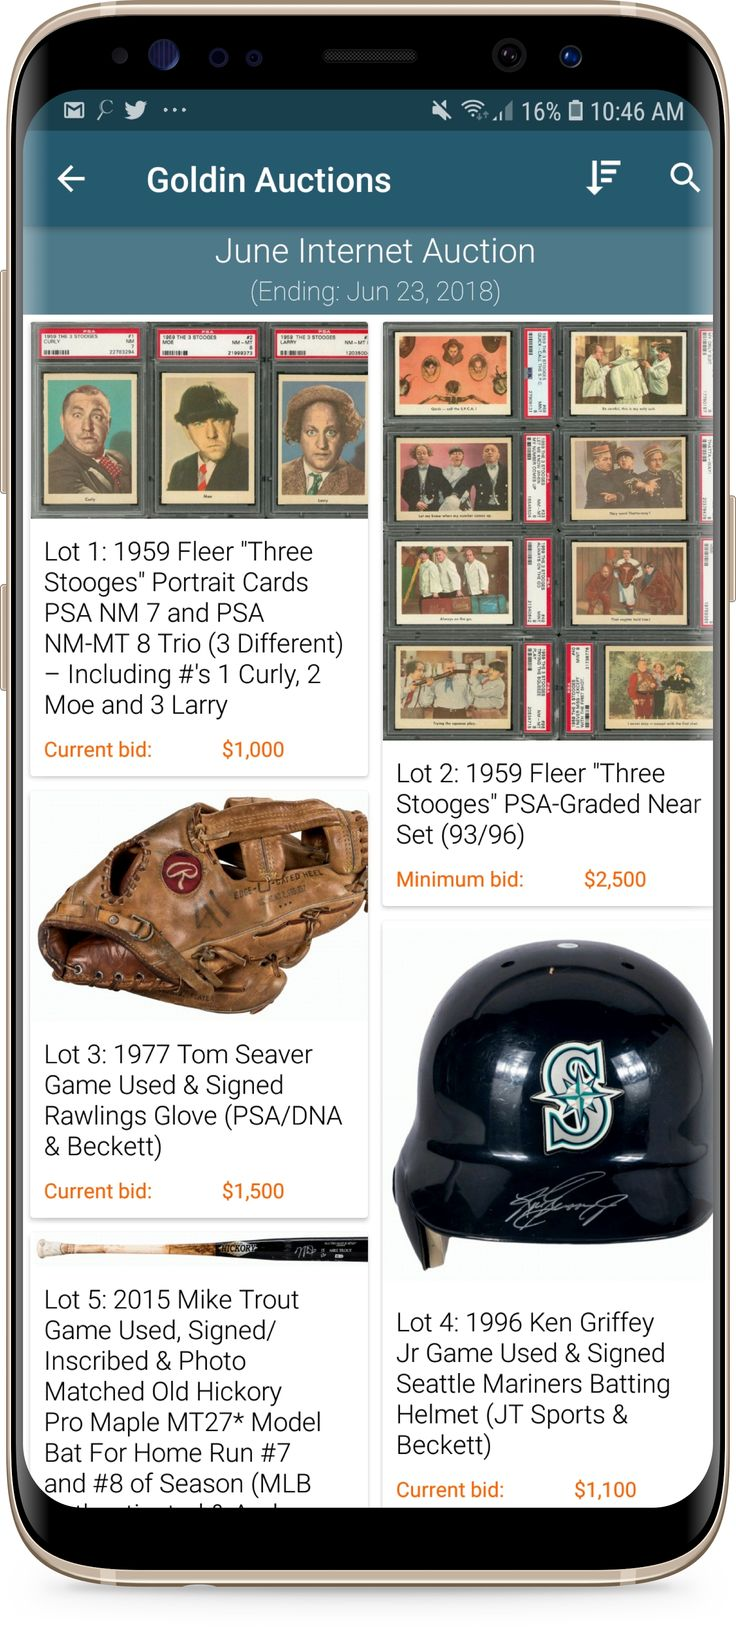 A great selection of sports and nonsports cards, high